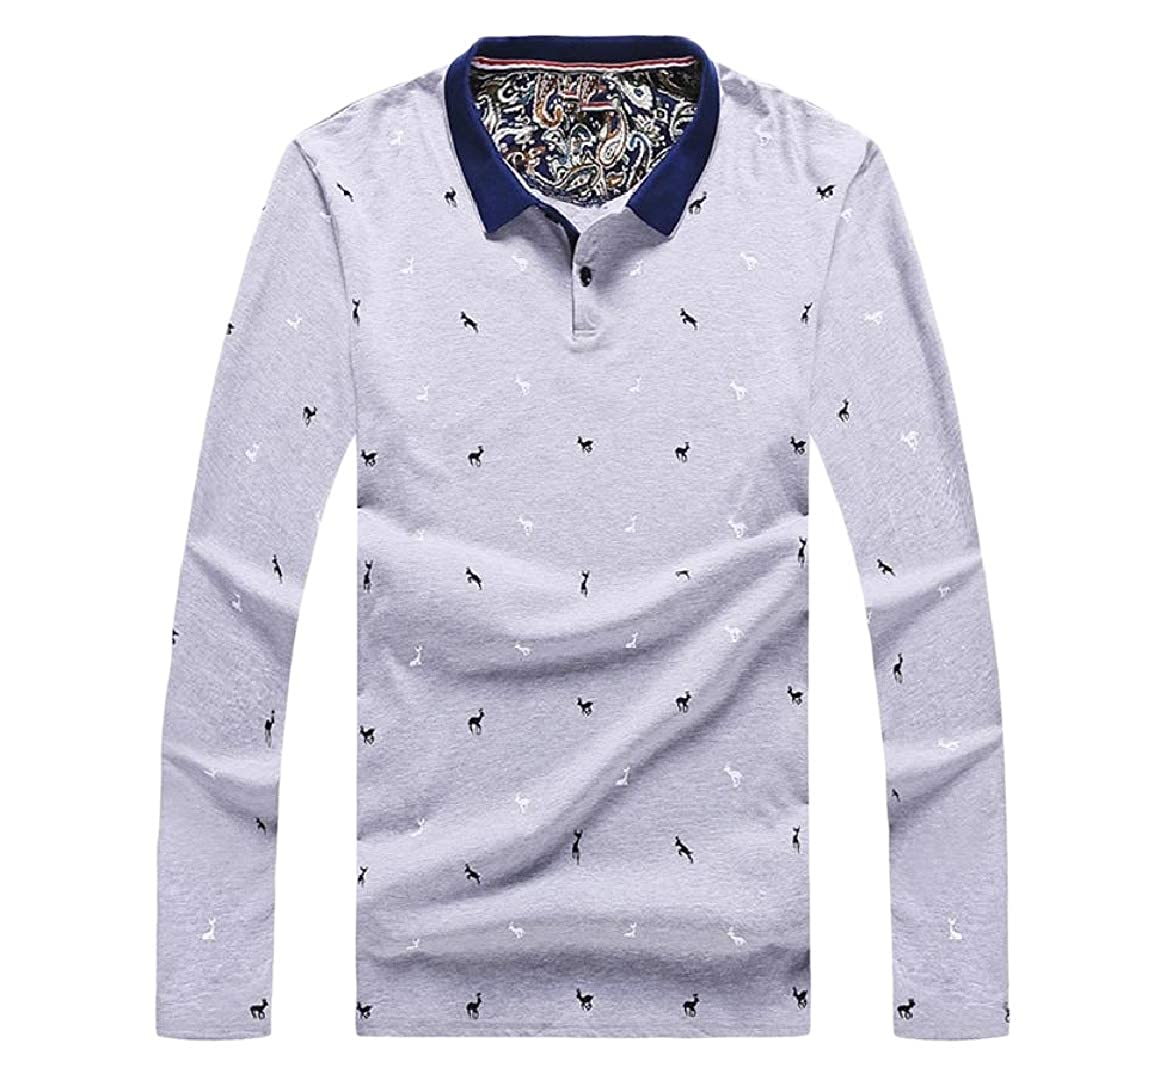 Comaba Mens Formal Plus-Size Printed Classic-Fit Slim Fit Polo Shirt